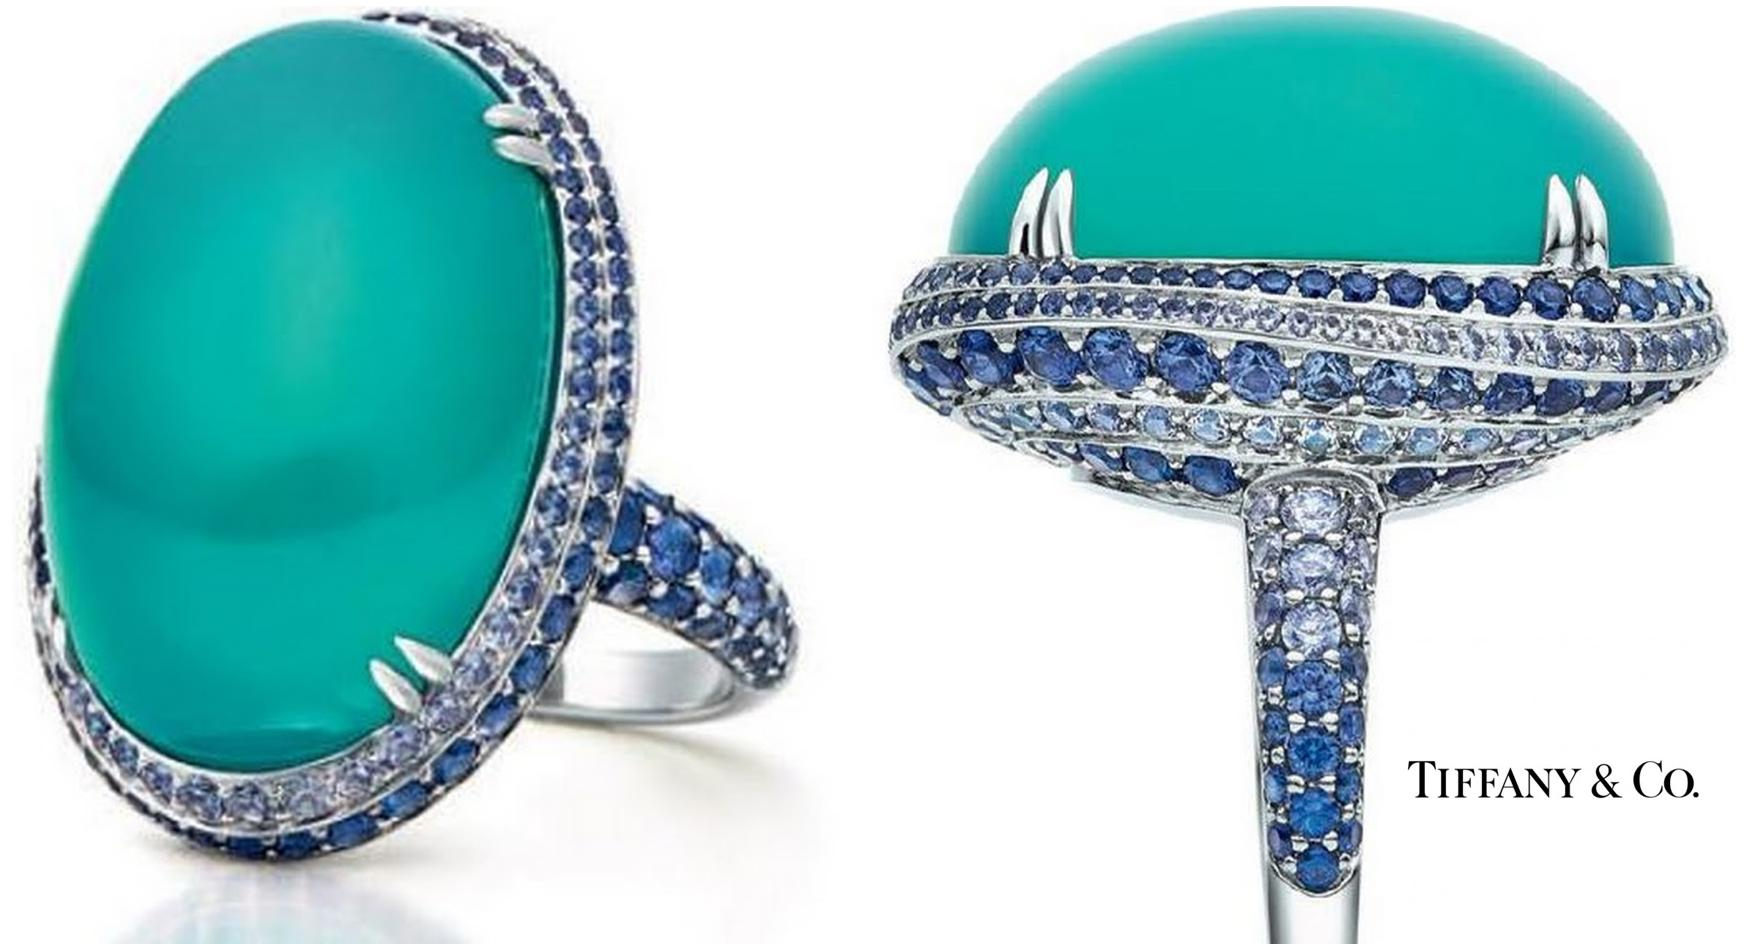 the art of the sea - gioielli tiffany & co.